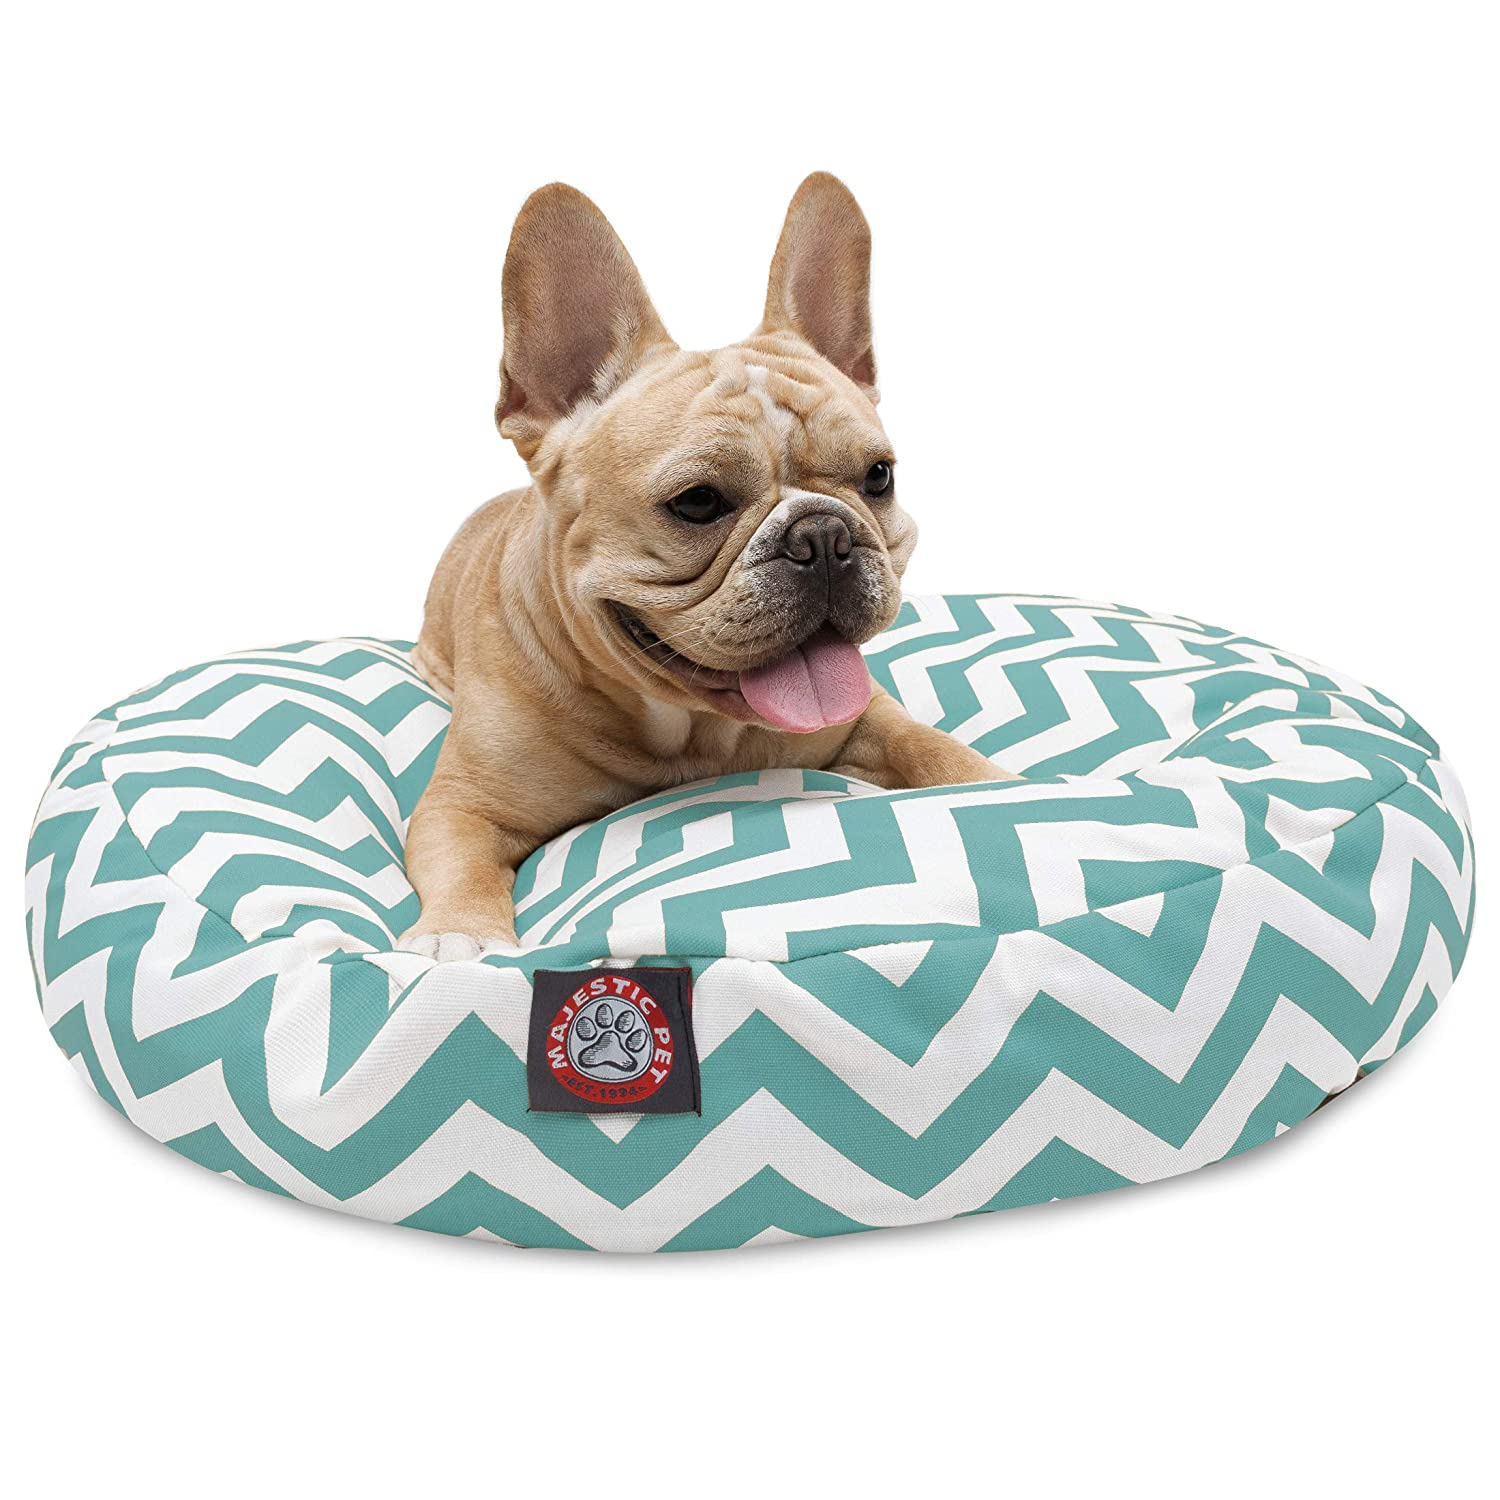 Teal Chevron Small Round Indoor Outdoor Pet Dog Bed with Removable Washable Cover by Majestic Pet Products